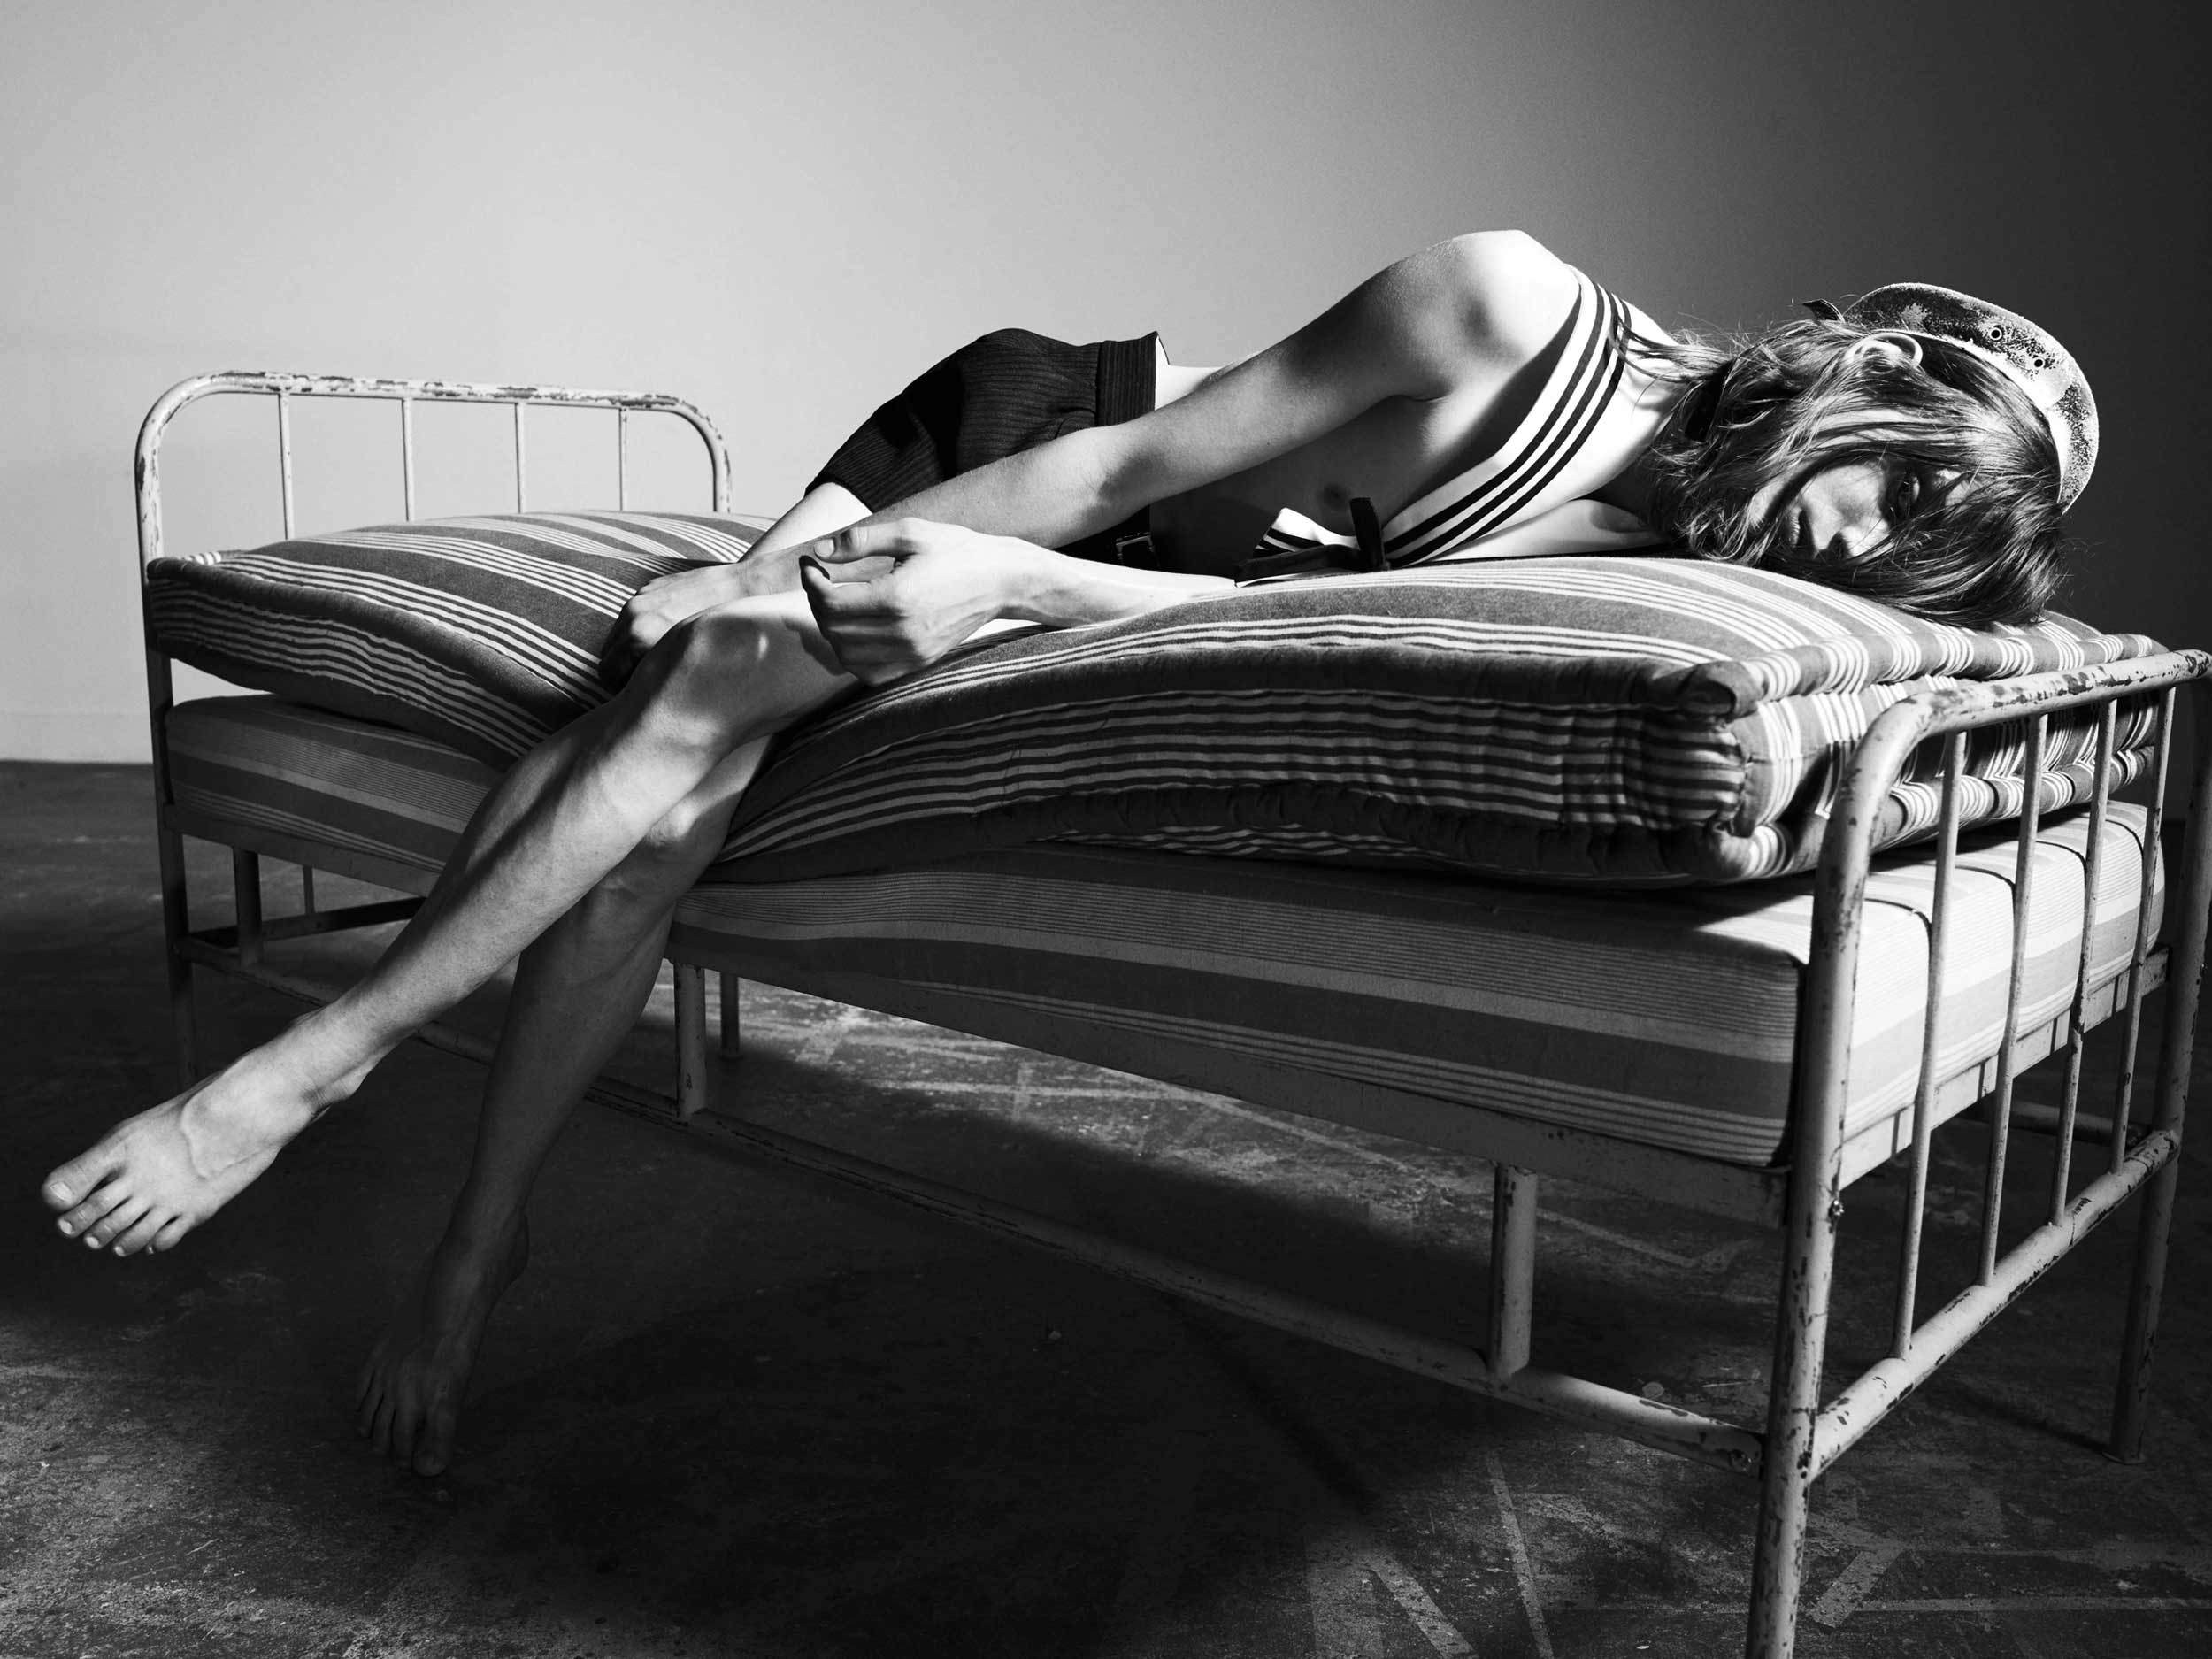 Willy Vanderperre and Olivier Rizzo's otherworldly ode to Maison Margiela